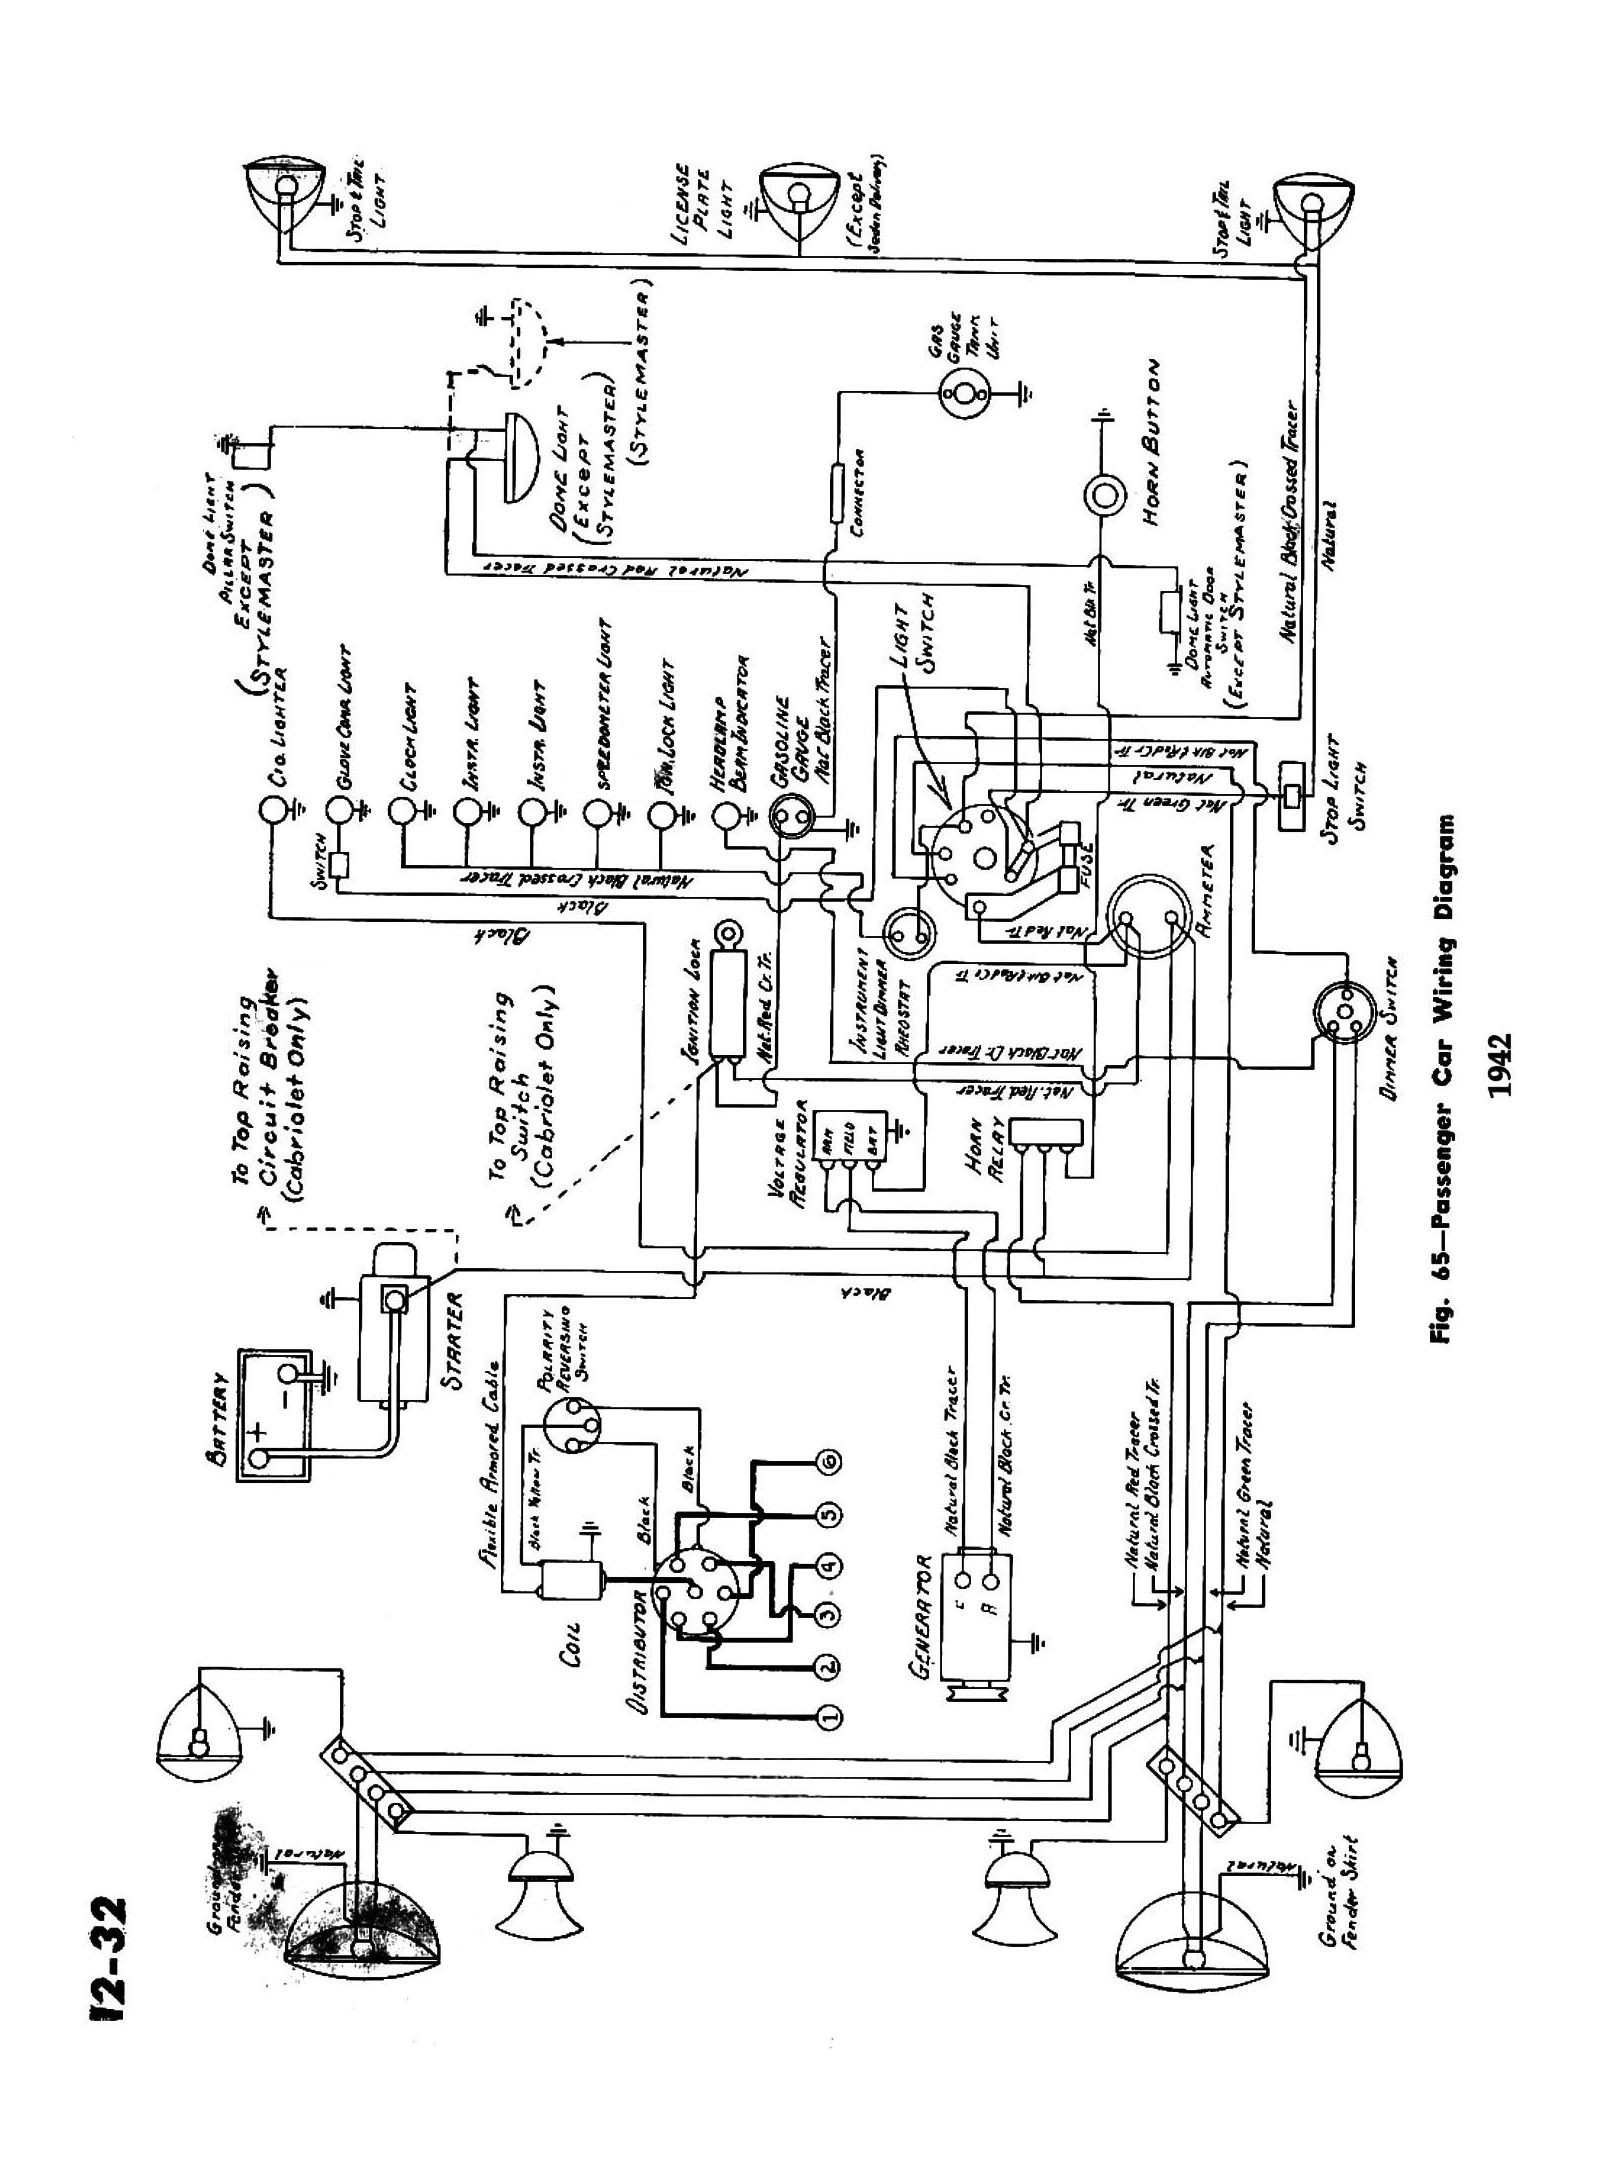 42csm1232a 1950 chevy truck wiring harness on 1950 download wirning diagrams chevy truck wiring harness at aneh.co